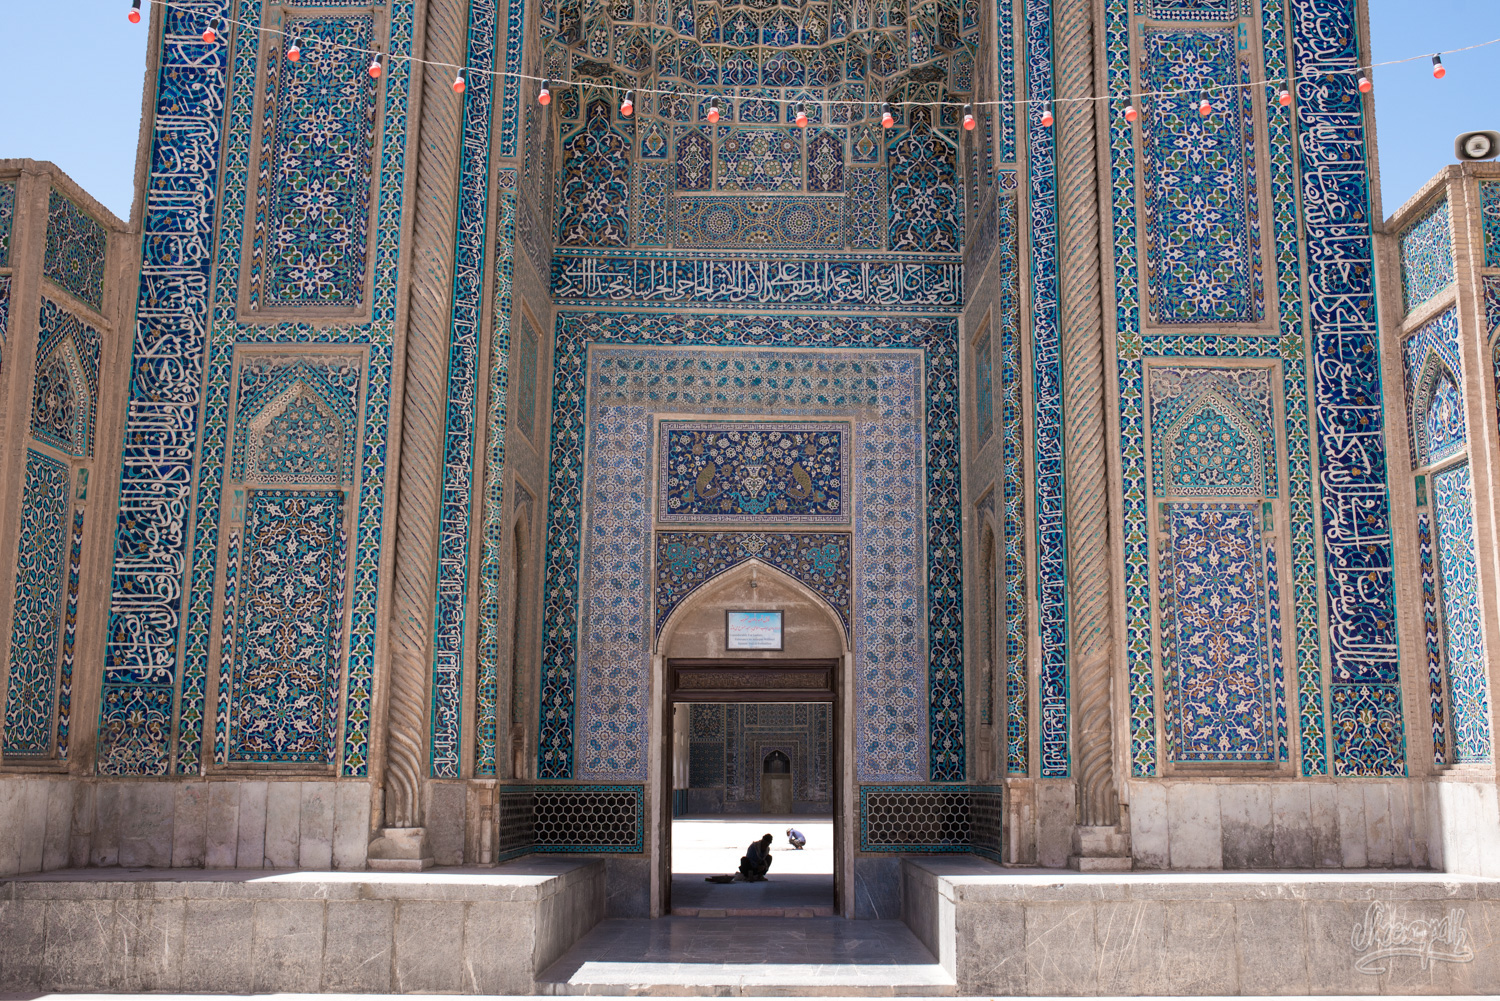 La Jameh mosque de Kerman